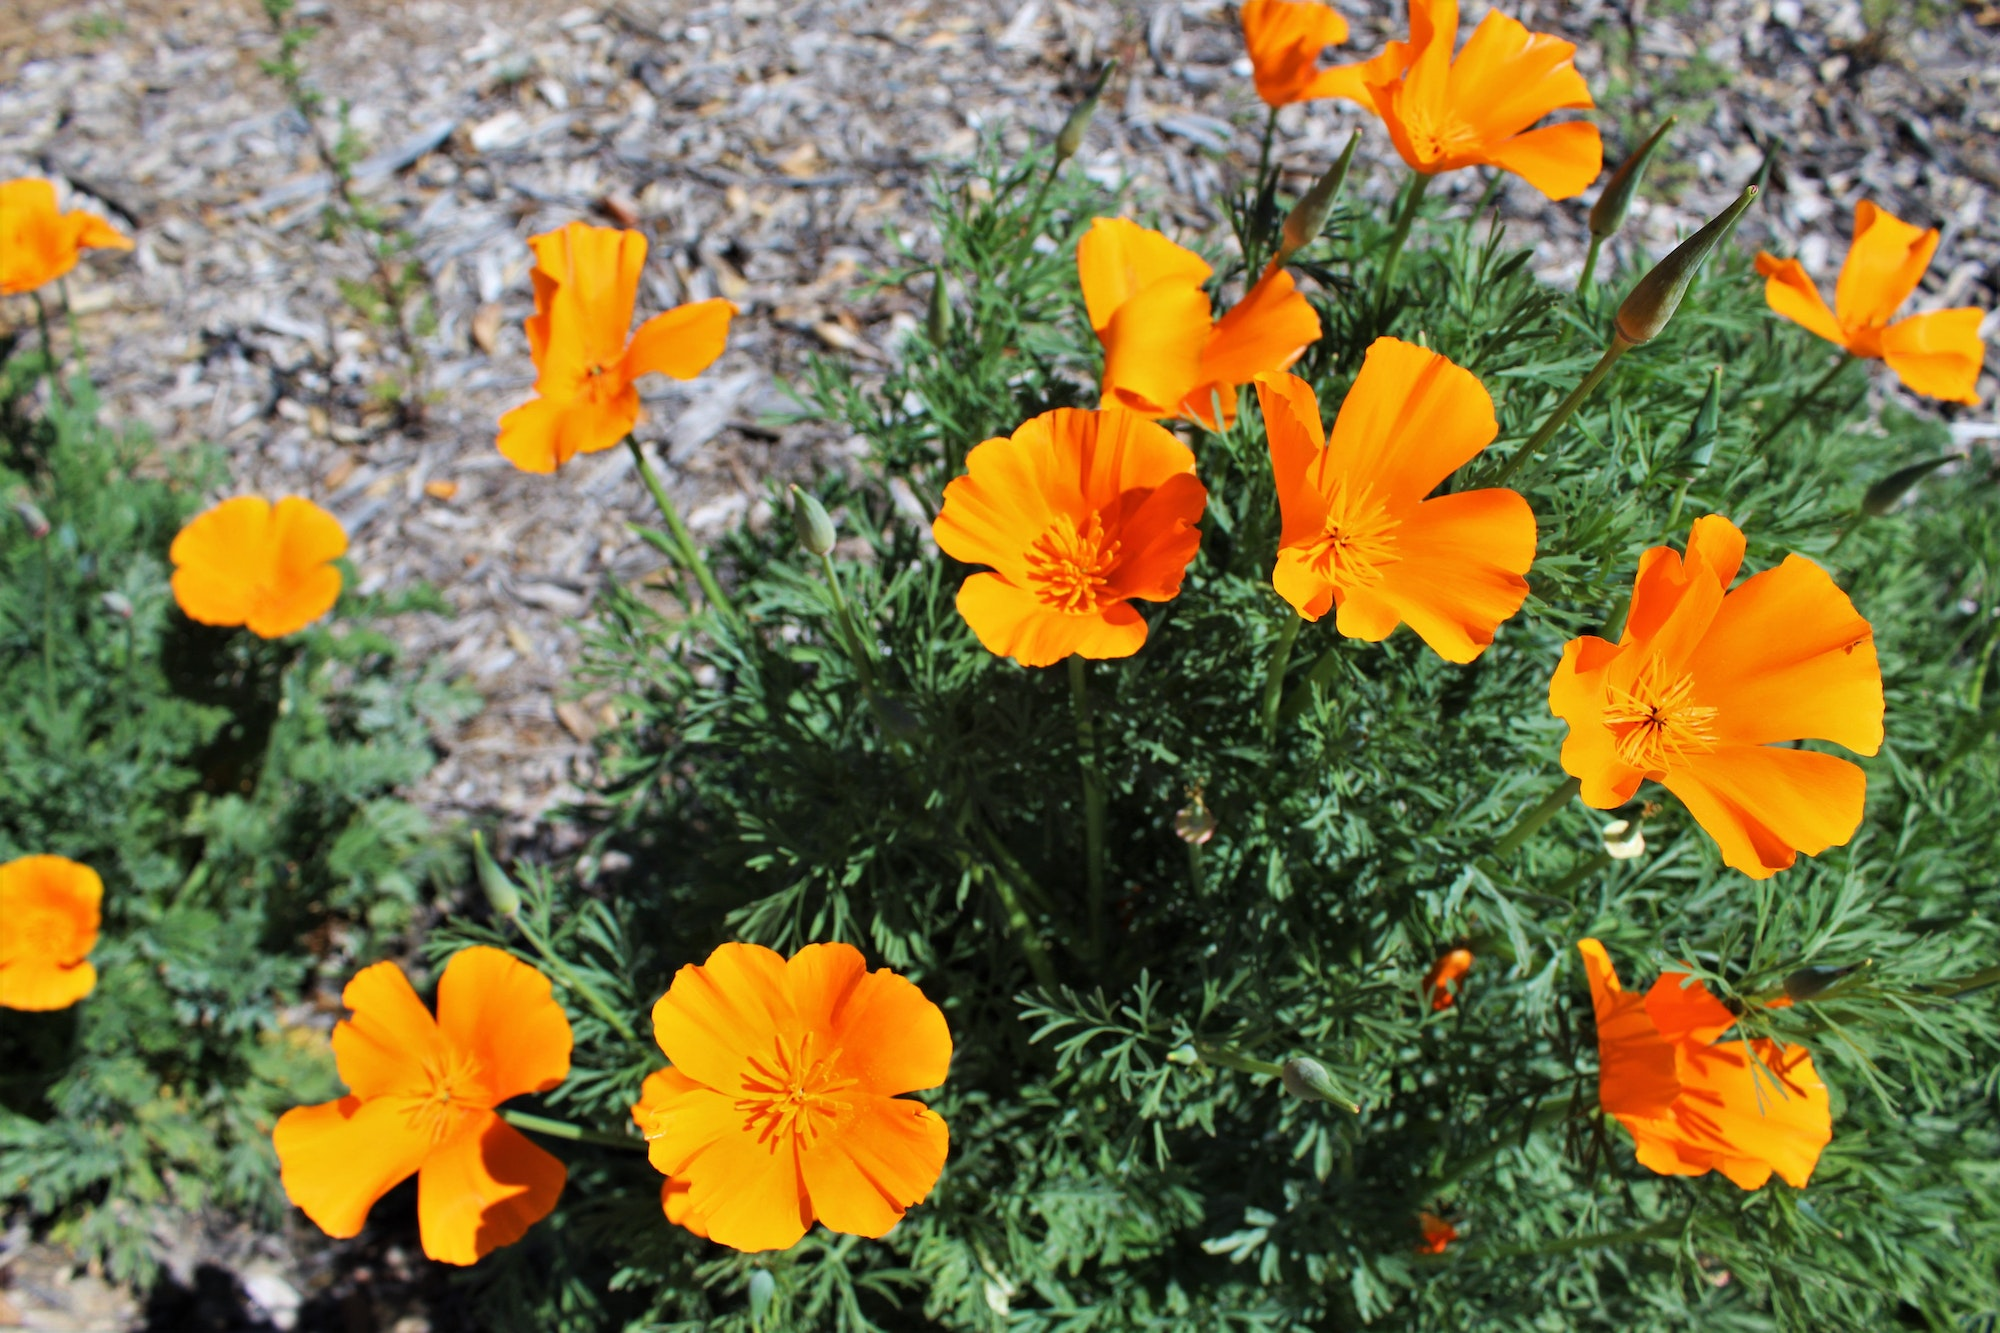 Image of orange poppy flowers.